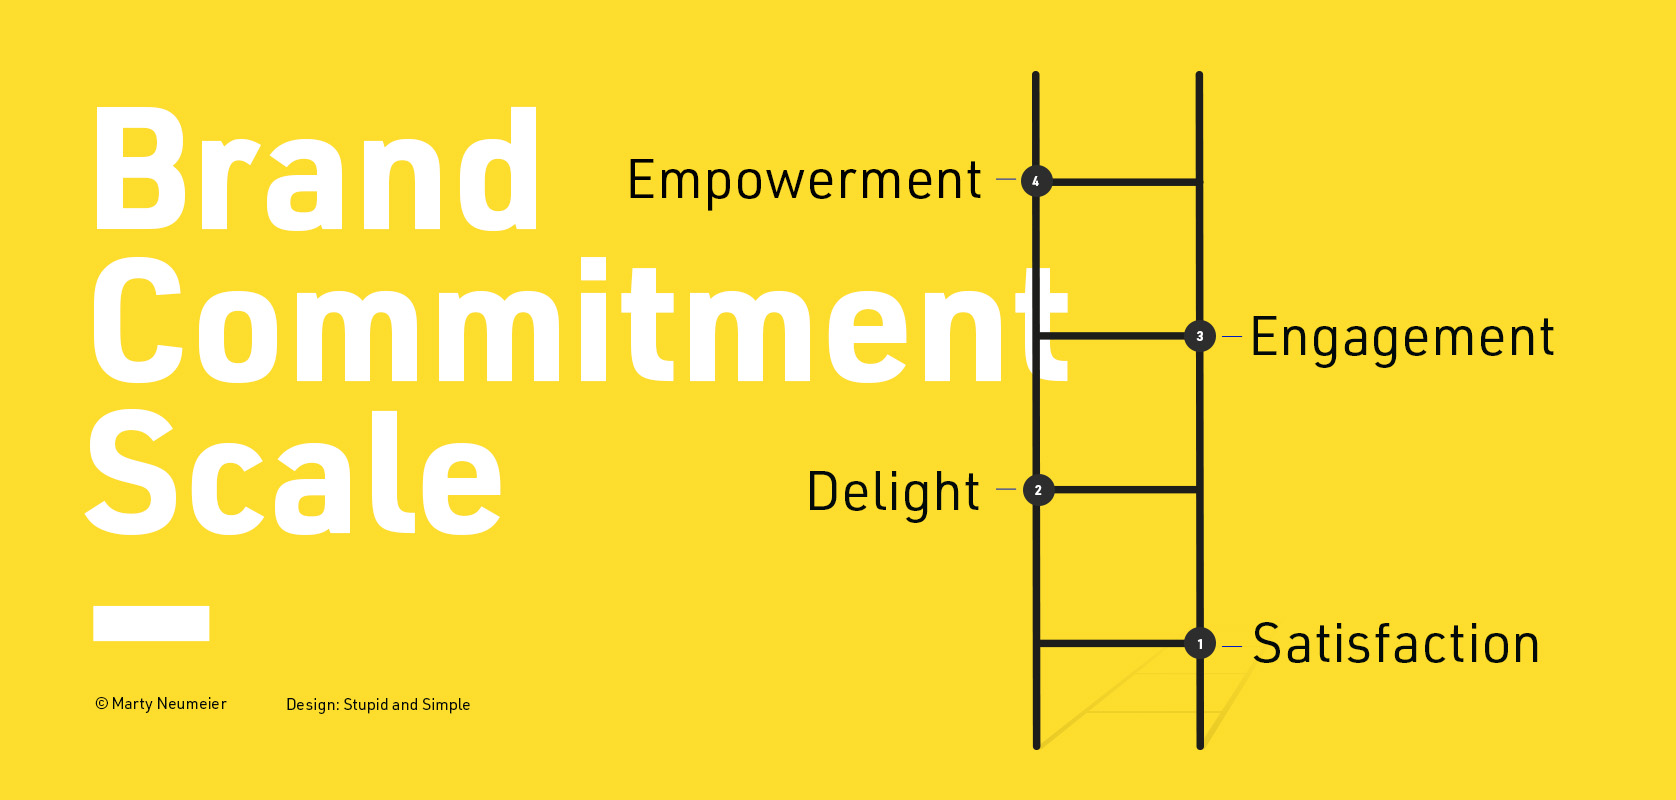 Brand-Commitment-Scale von Marty Neumeier